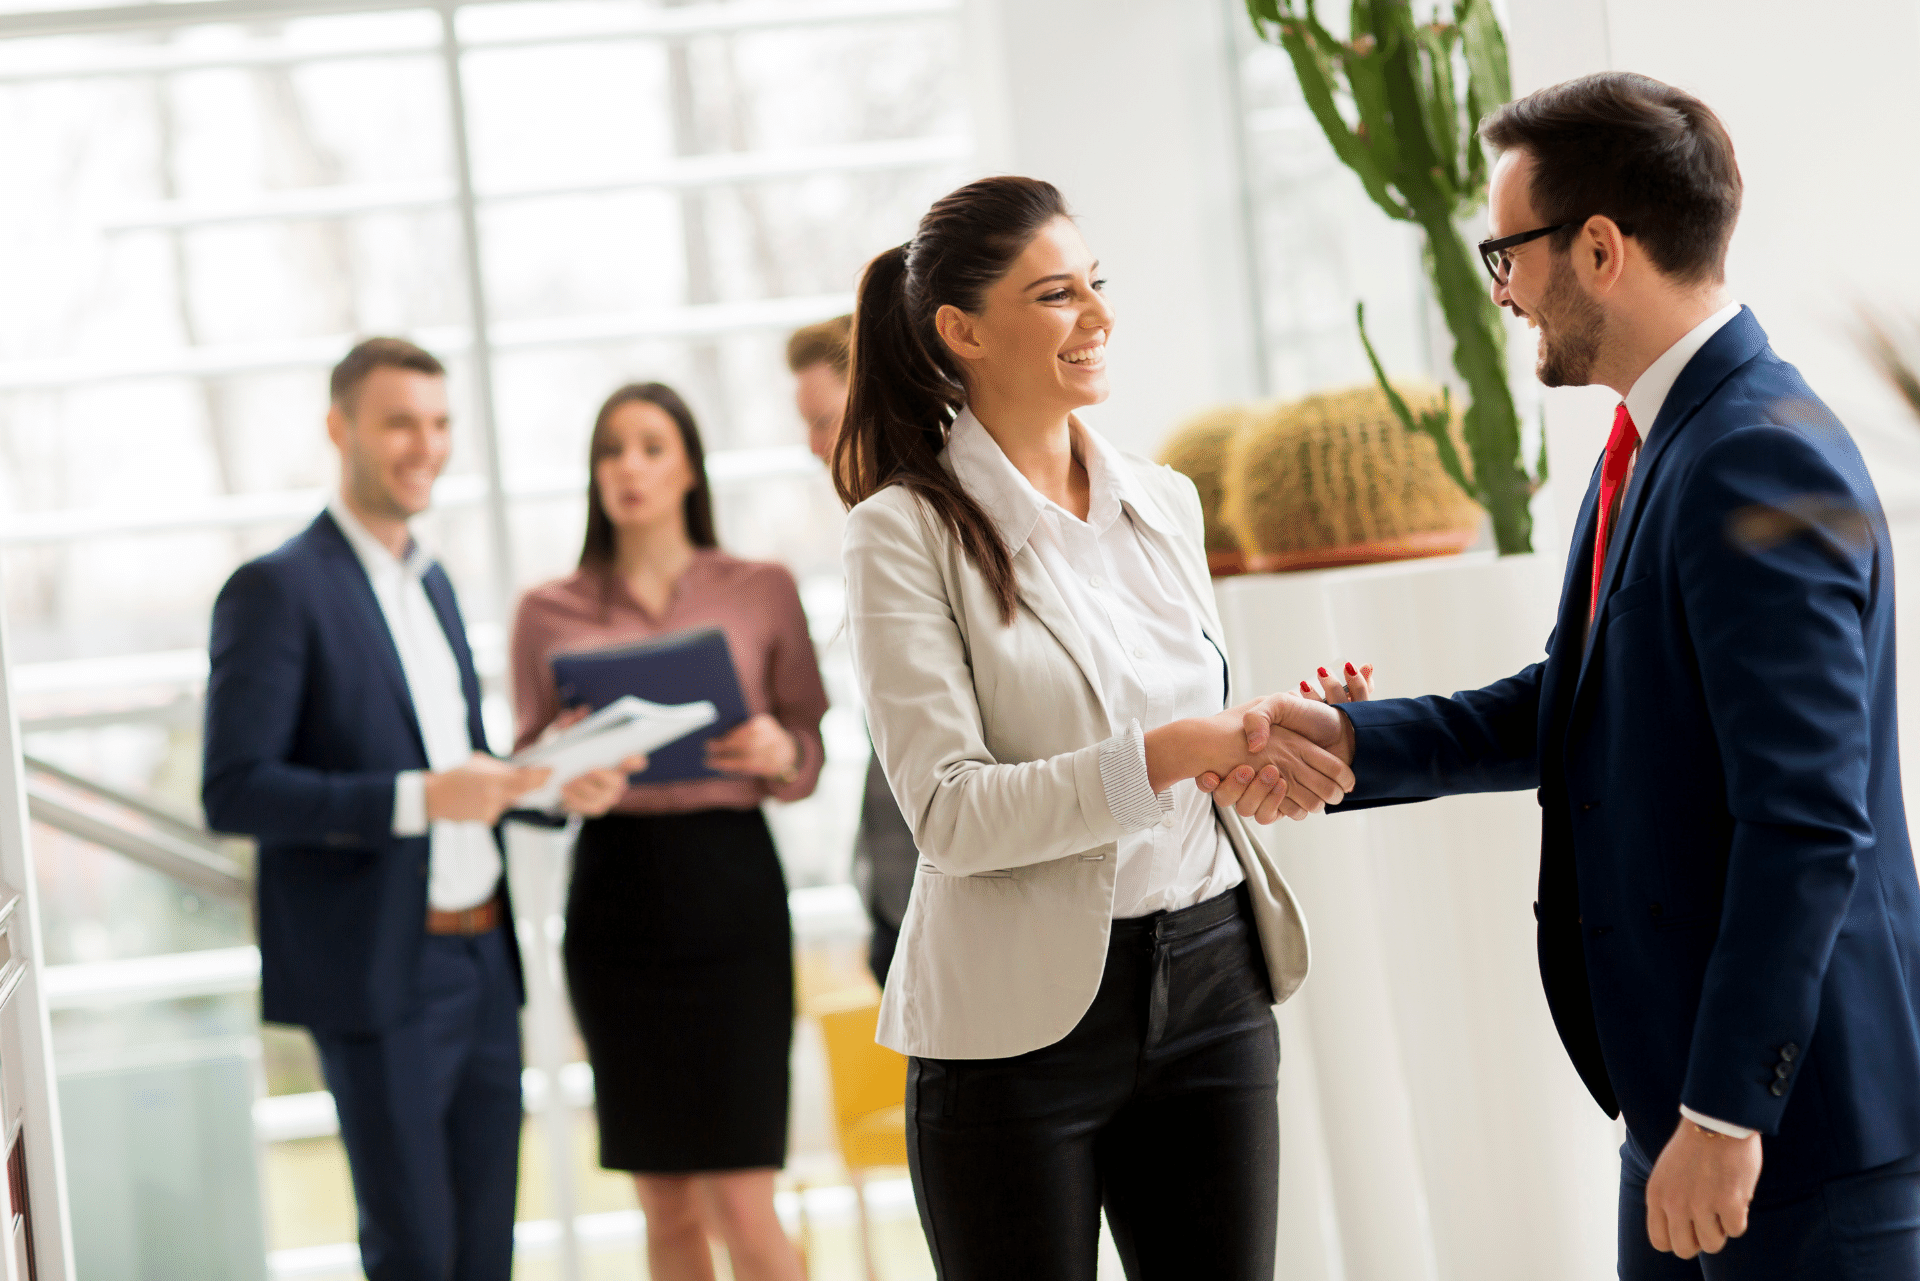 Referral partners shaking hands